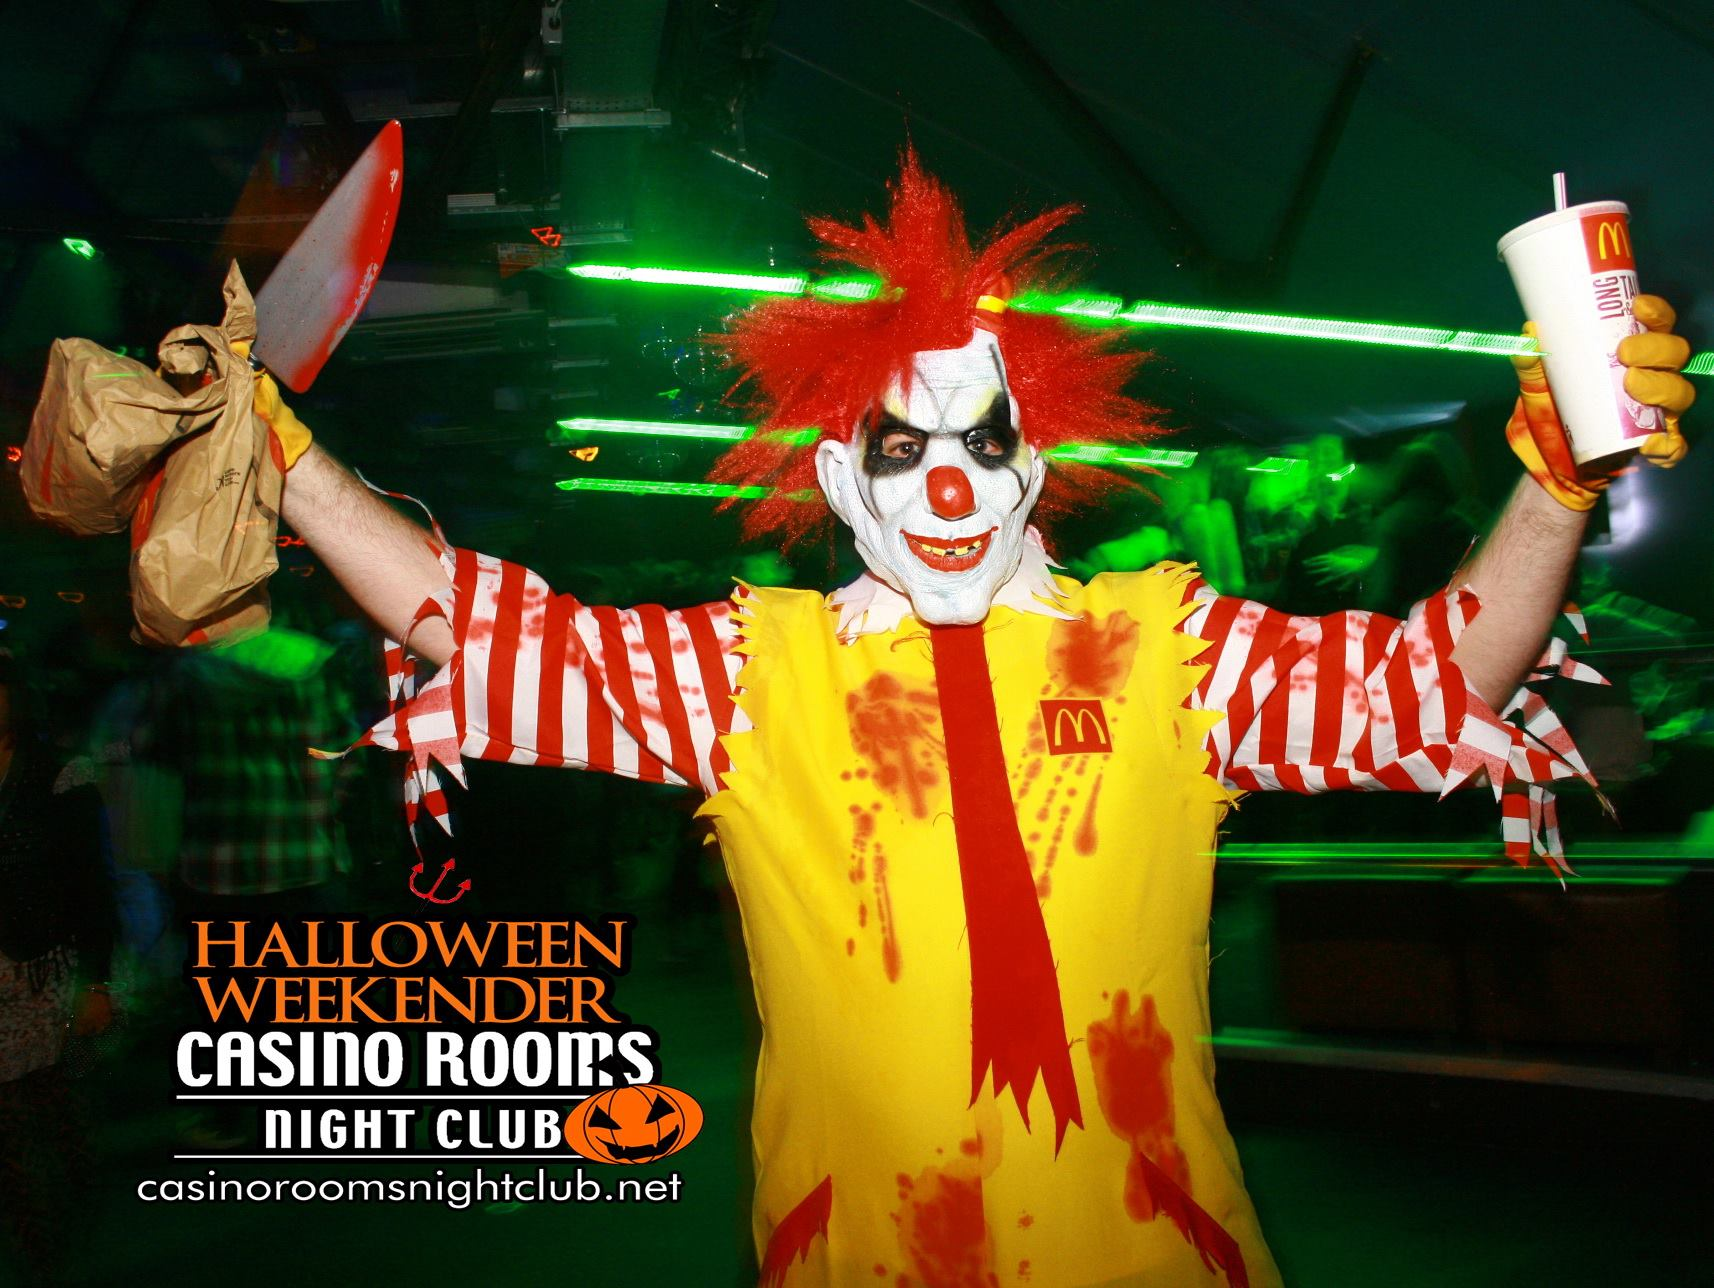 Getting dressed up is all part of the fun at The UK's Premier Halloween Clubbing Experience! See these awesome photos from previous years to get ideas for YOUR Fancy Dress! FRIDAY 26th & SATURDAY 27th October 2018 A whole weekend of horrific goings on & scary surprises that will leave you needing therapy for years to come...